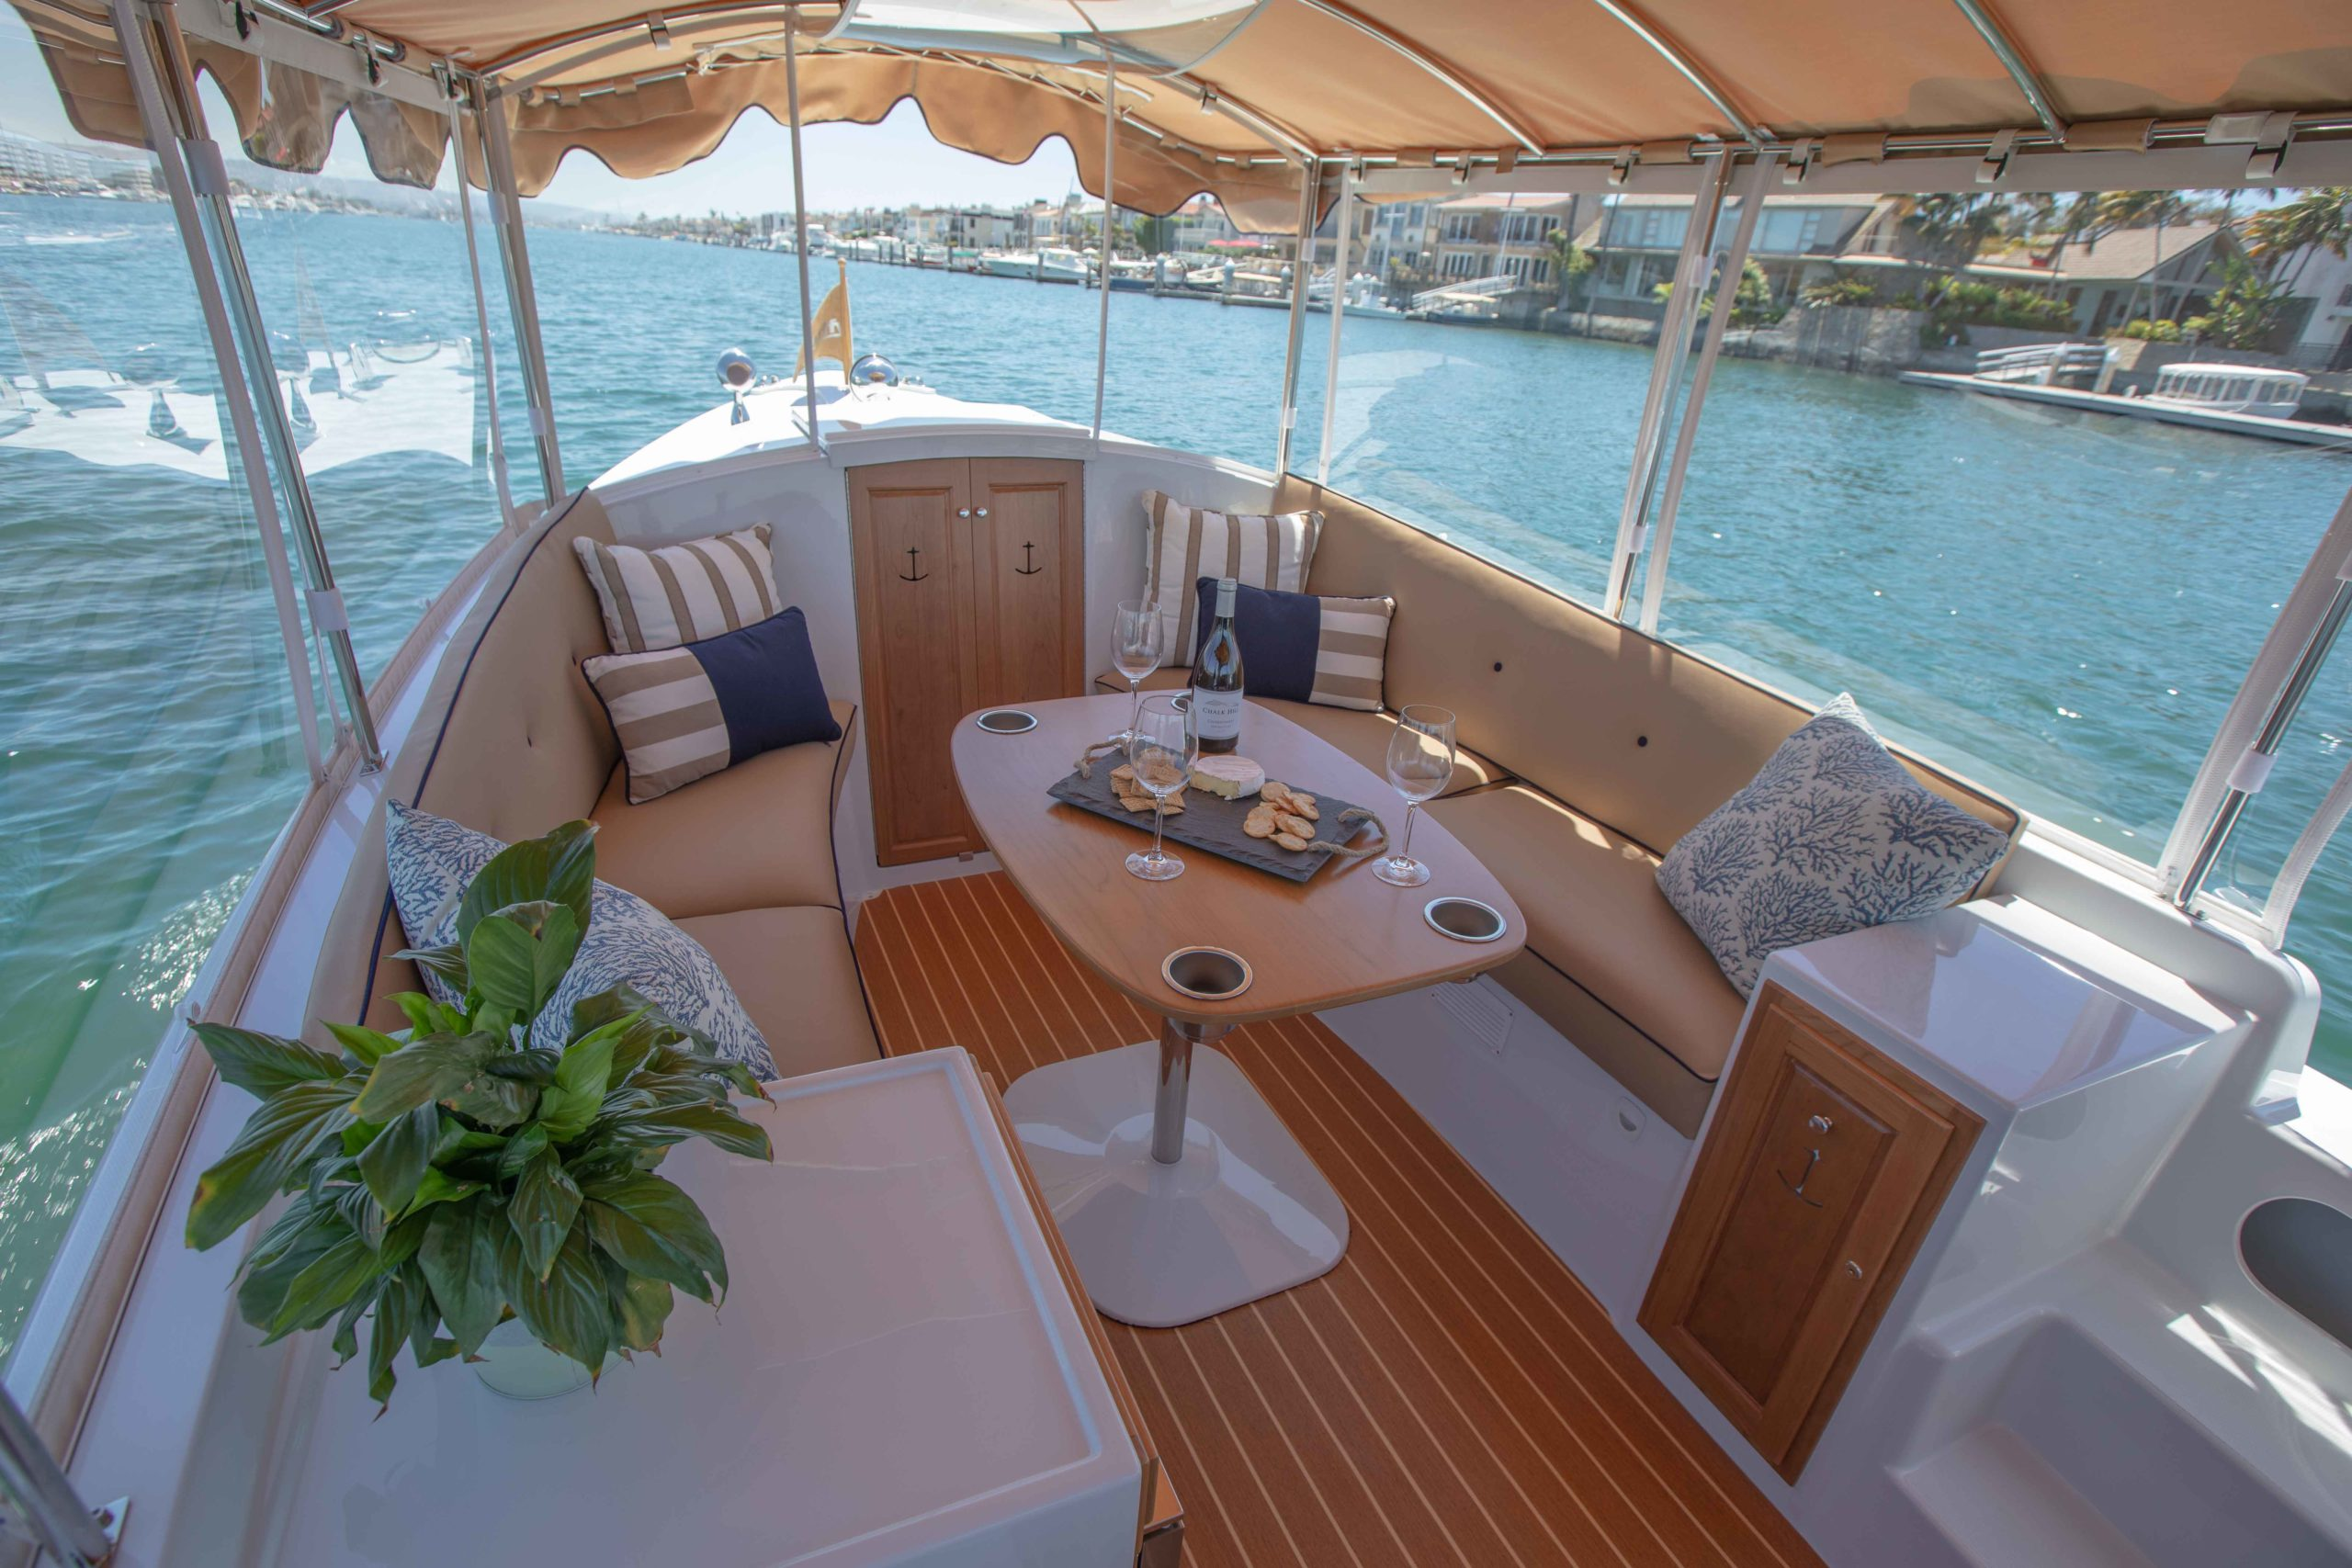 Duffy-Electric-Boats-22-Cuddy-Cabin-Interior-11